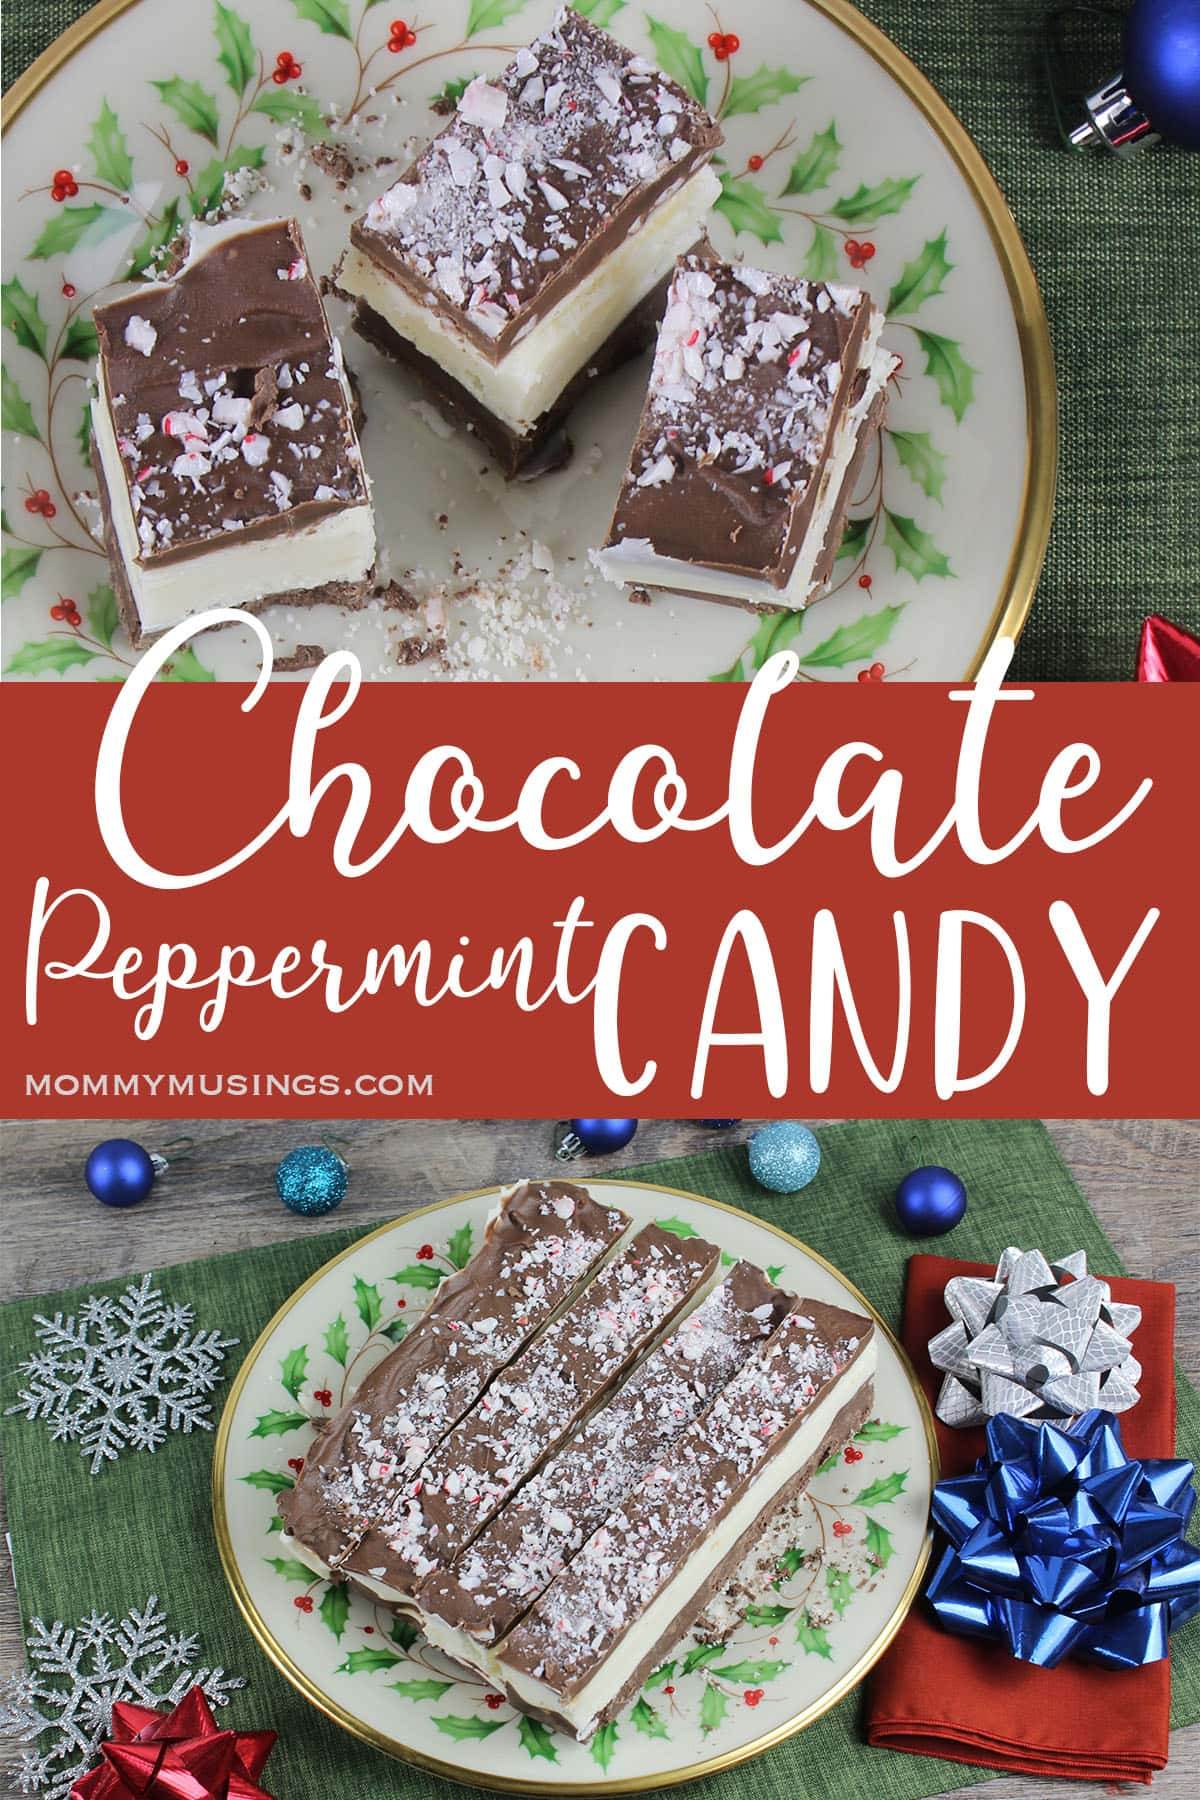 photo collage of chocolate peppermint candy recipe